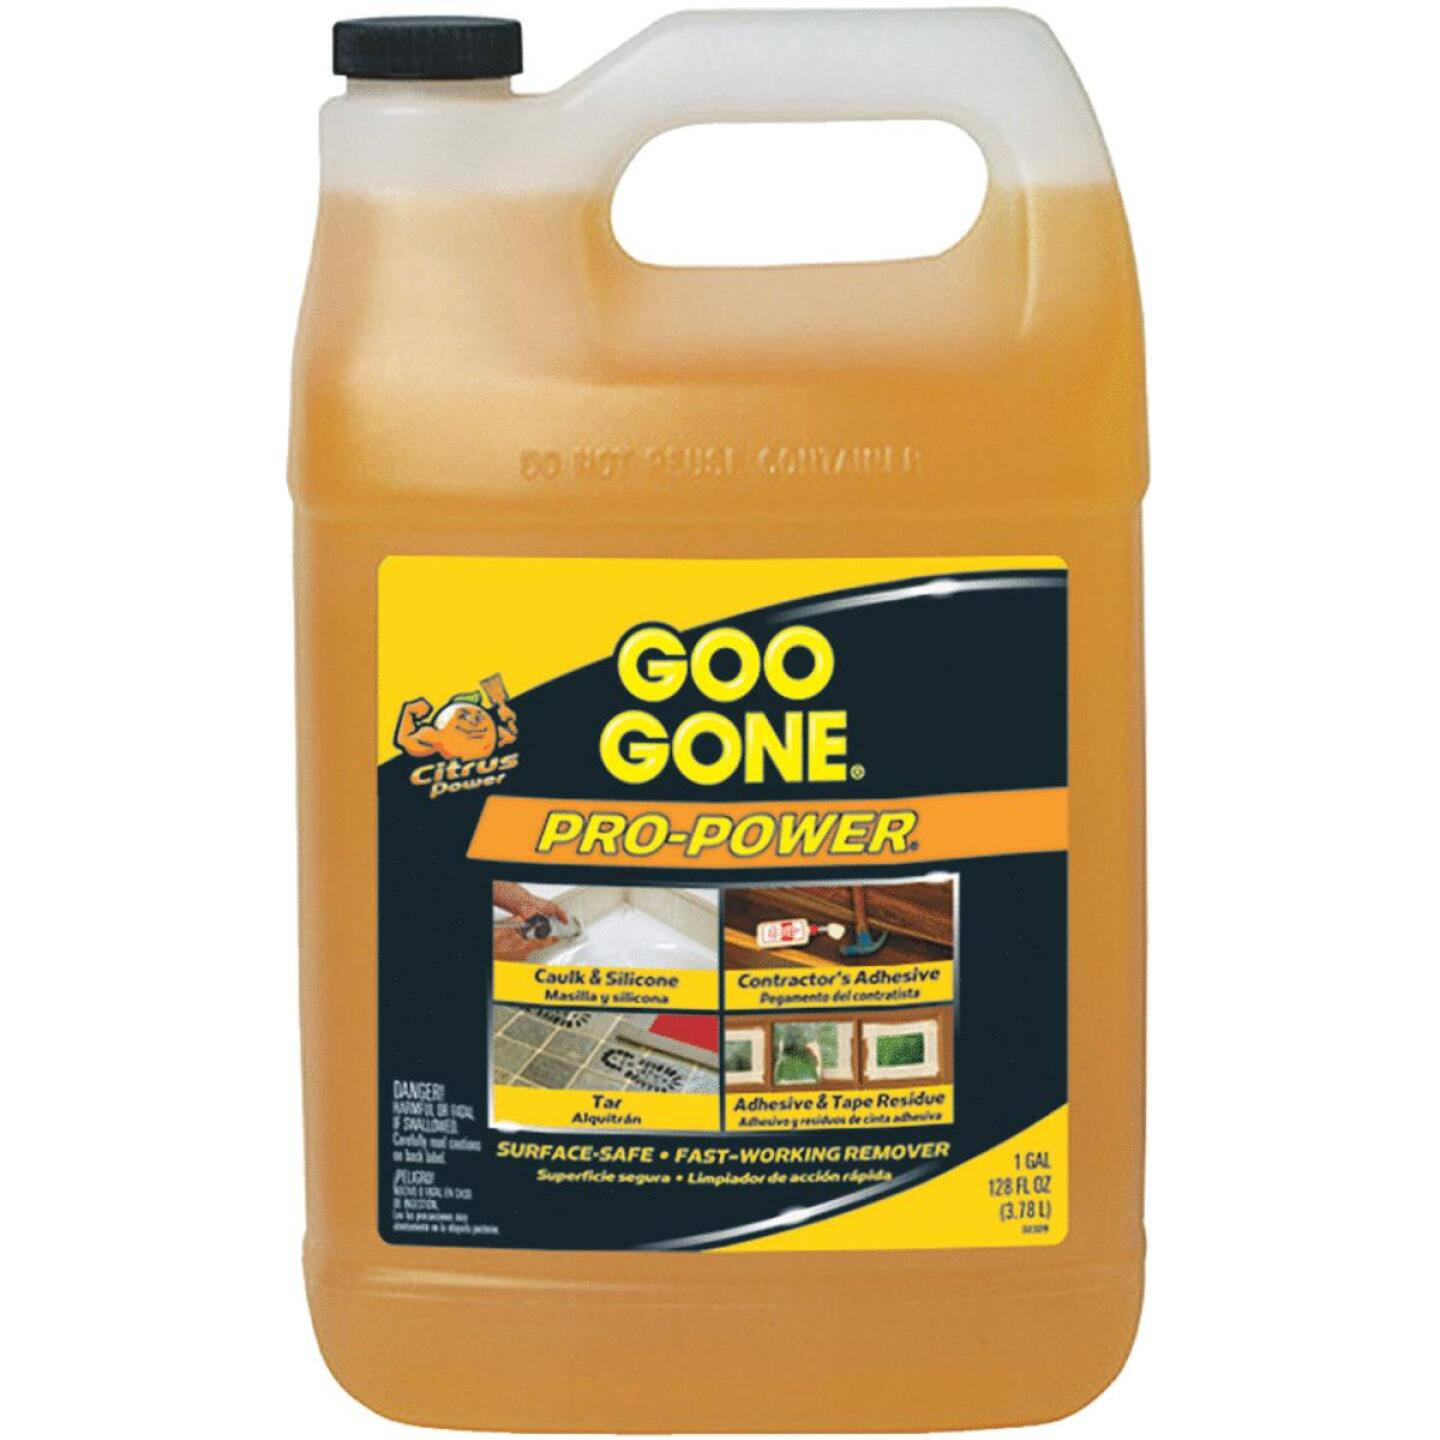 Goo Gone 1 Gal. Pro-Power Adhesive Remover Image 259